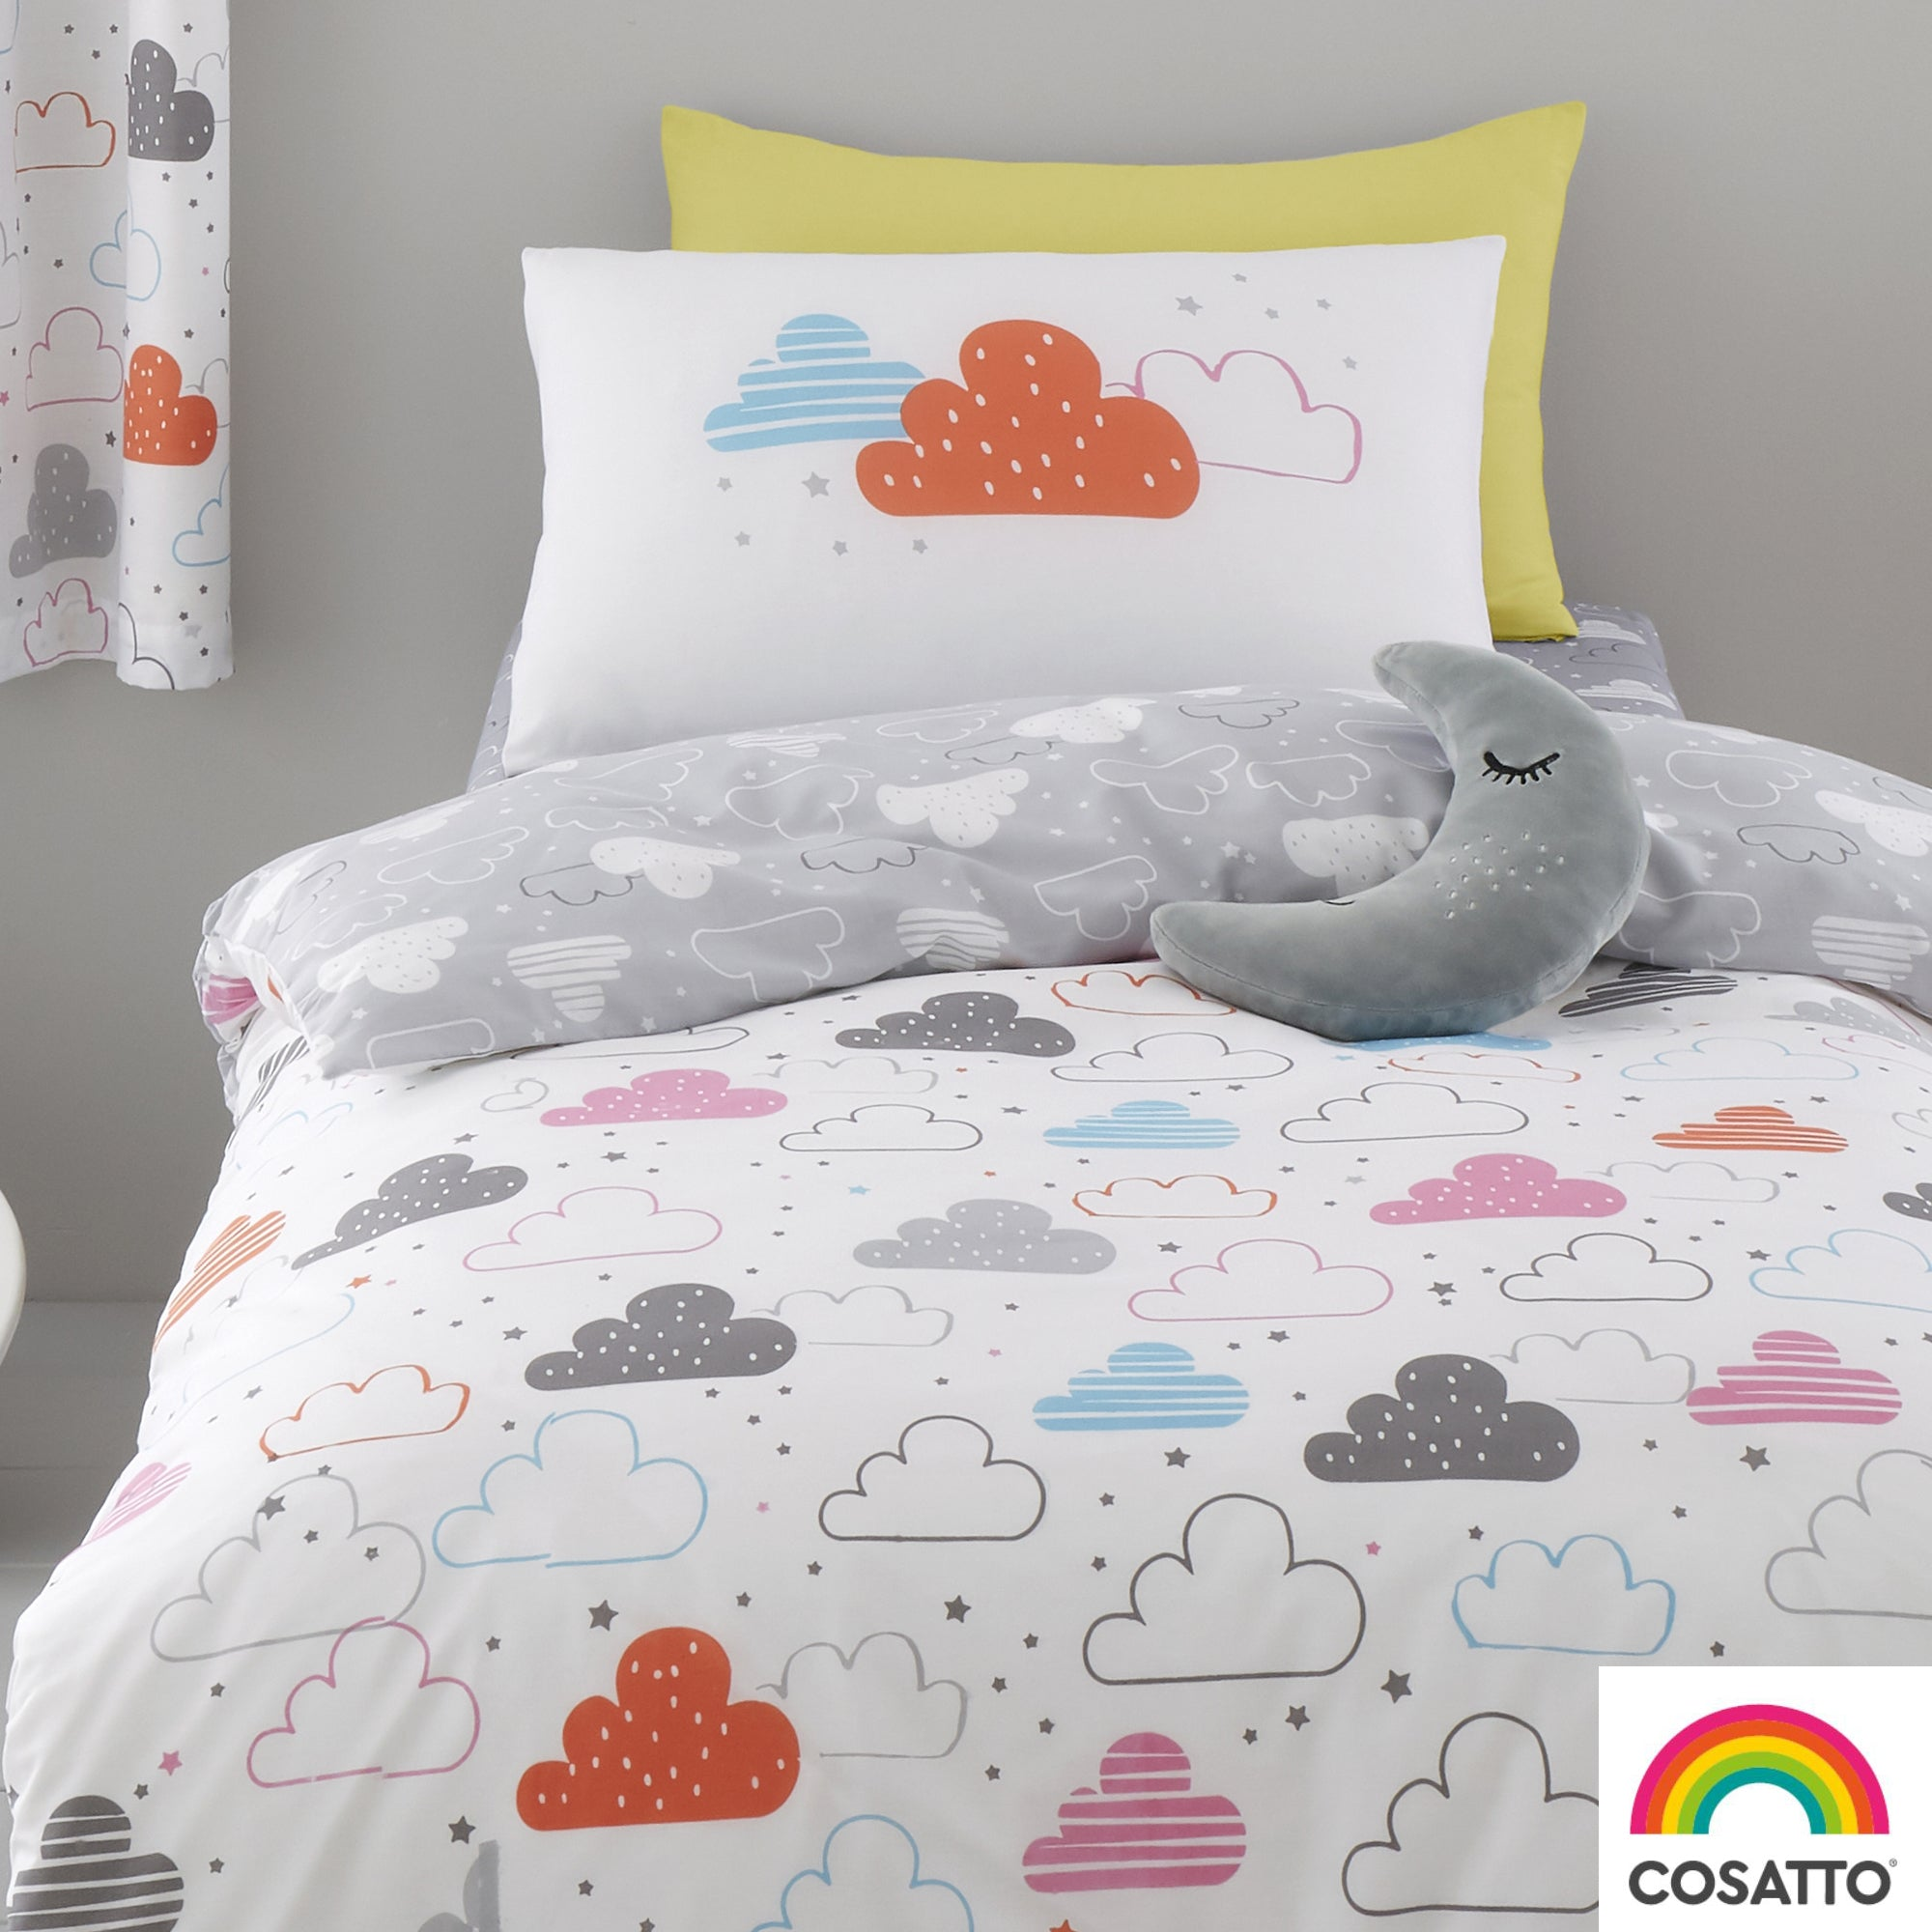 Fairy Clouds - Cuddly Cushion - Cosatto